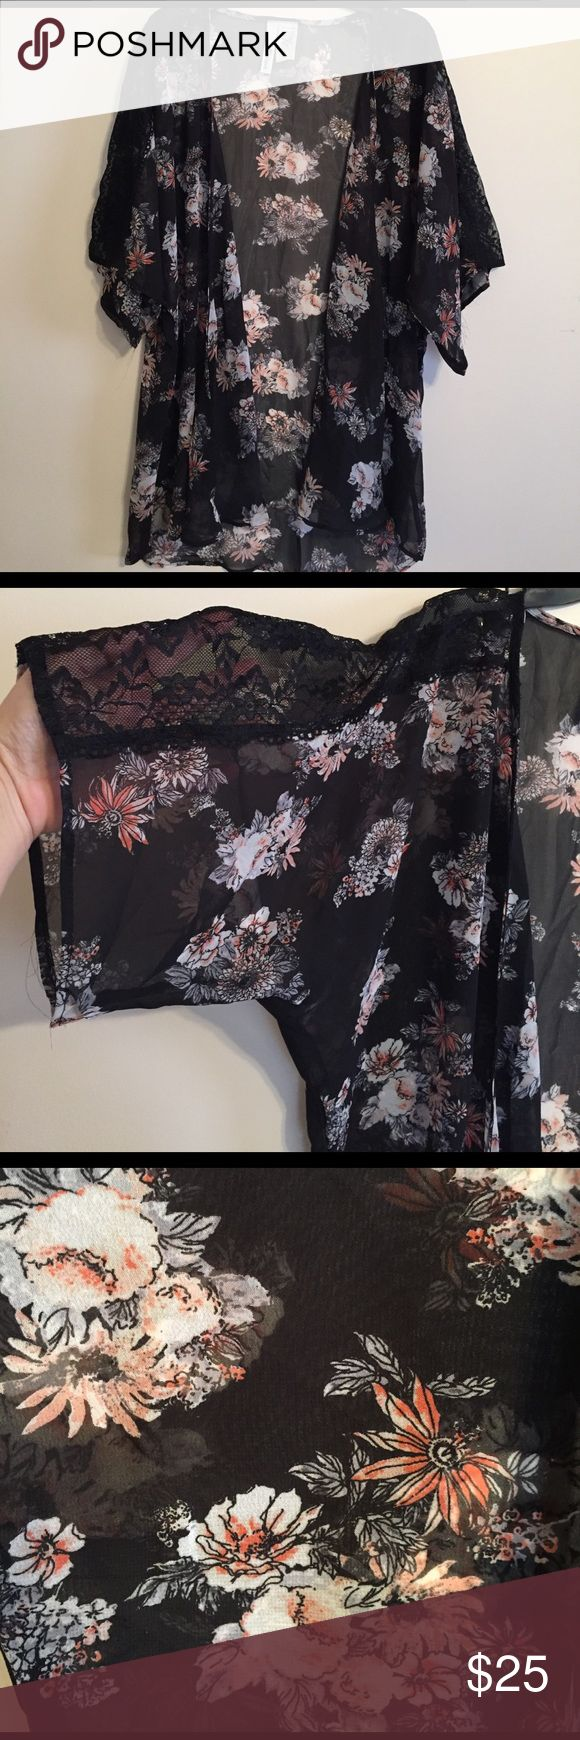 ✨Last Chance✨Gorgeous Cover Up / Robe Incredibly gorgeous Cover Up - Similar to LuLaRoe Monroe - New without tags LuLaRoe Intimates & Sleepwear Robes